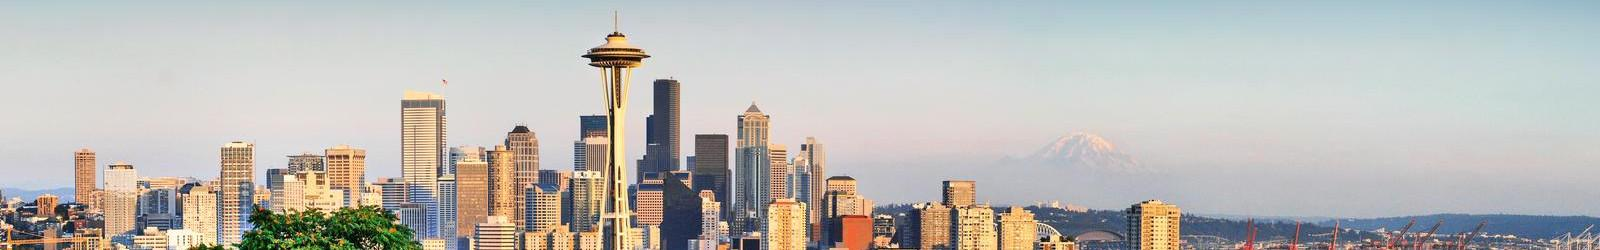 LGBT Issues therapists in Seattle, Washington